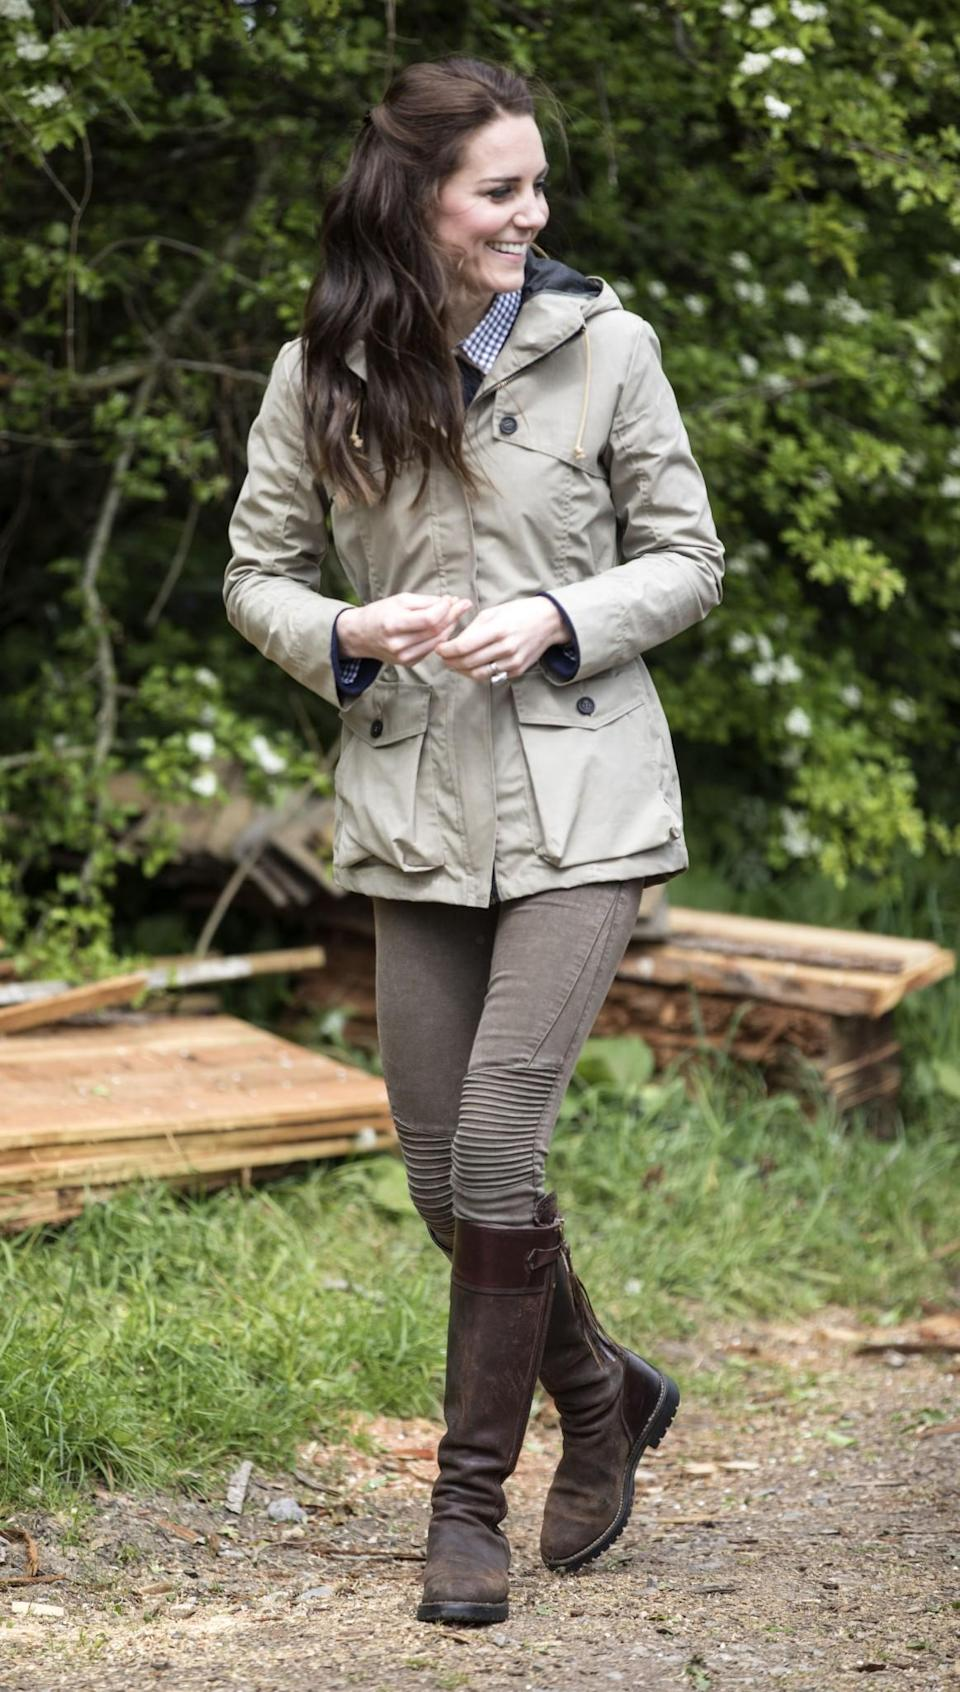 <p>The Duchess dressed down to visit a city farm in Gloucestershire. Wearing a £350 wax parka by Troy London, Kate donned brown biker jeans from Zara, a navy J Crew sweater and gingham shirt from Gap. She finished the neutral ensemble with tasselled Penelope Chilvers boots that she has been wearing for a whopping 13 years.<br><i>[Photo: PA]</i> </p>